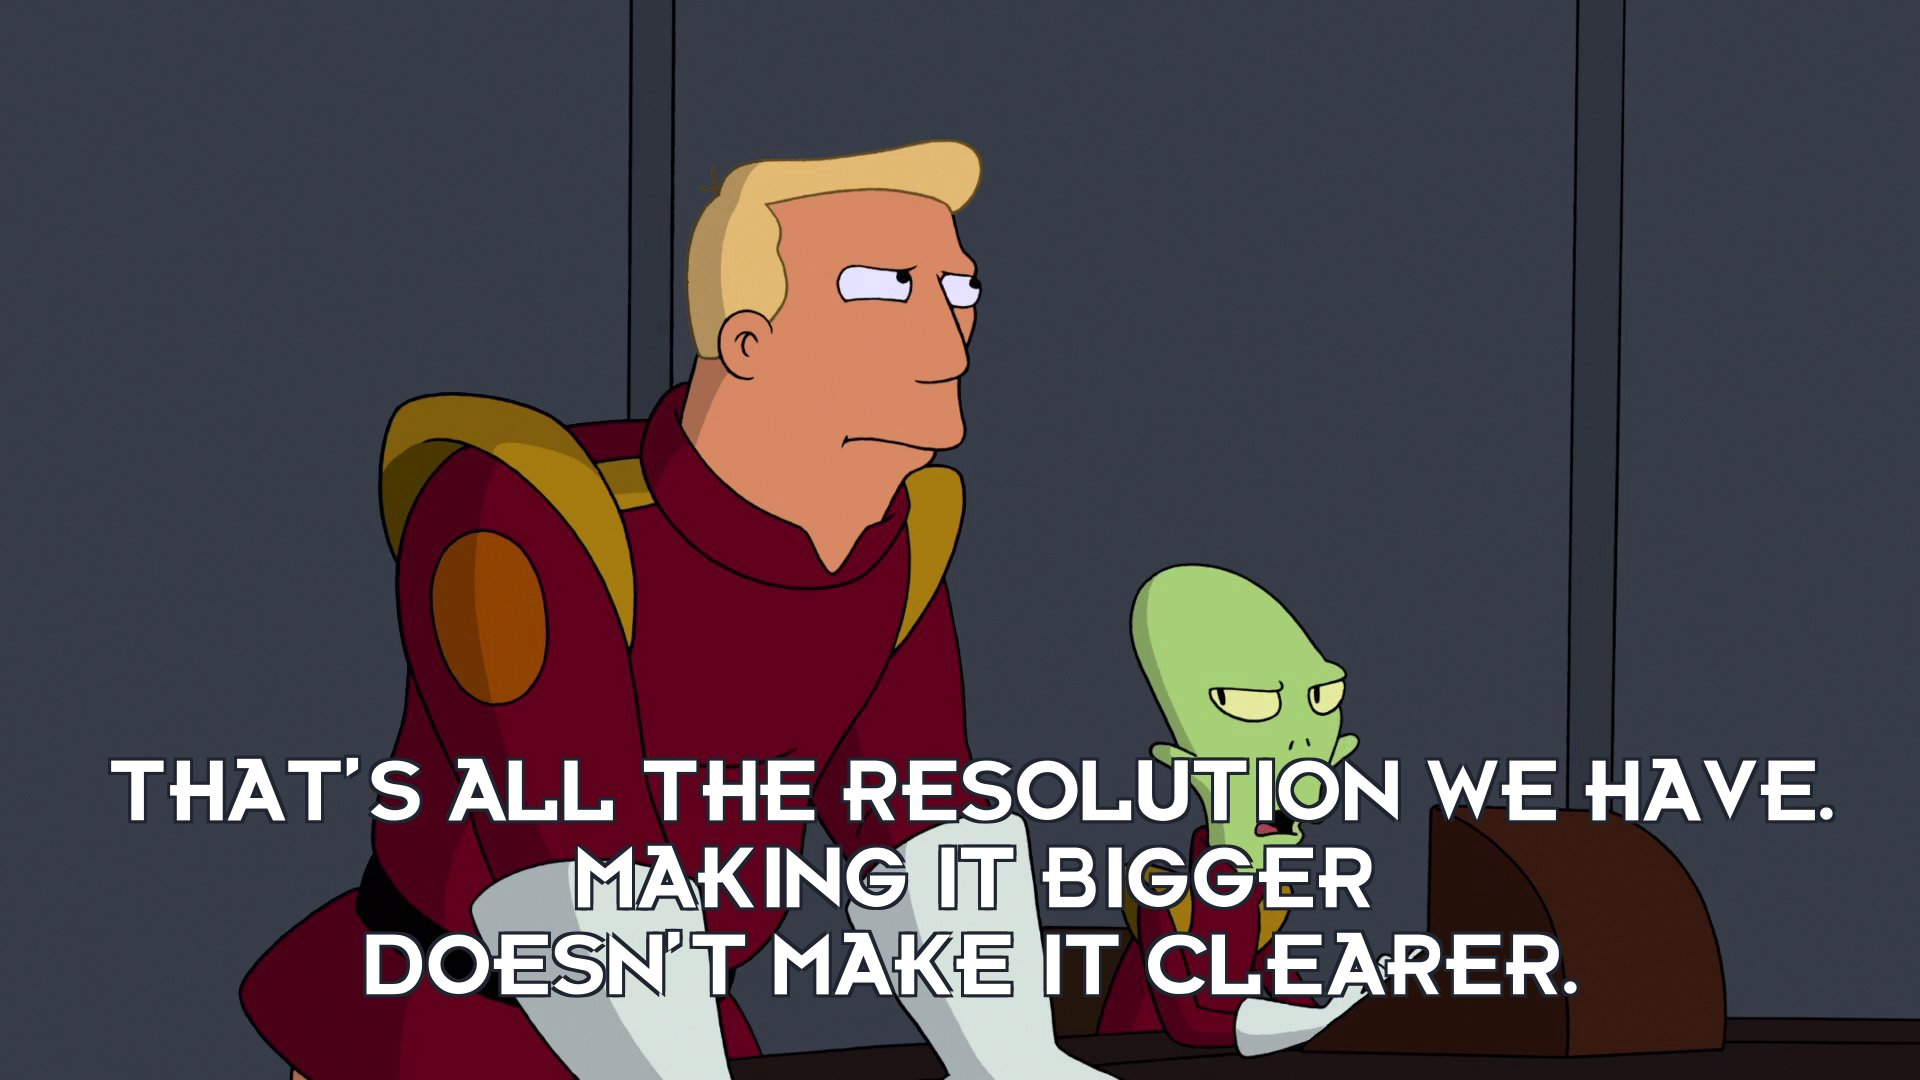 Kif Kroker: That's all the resolution we have. Making it bigger doesn't make it clearer.